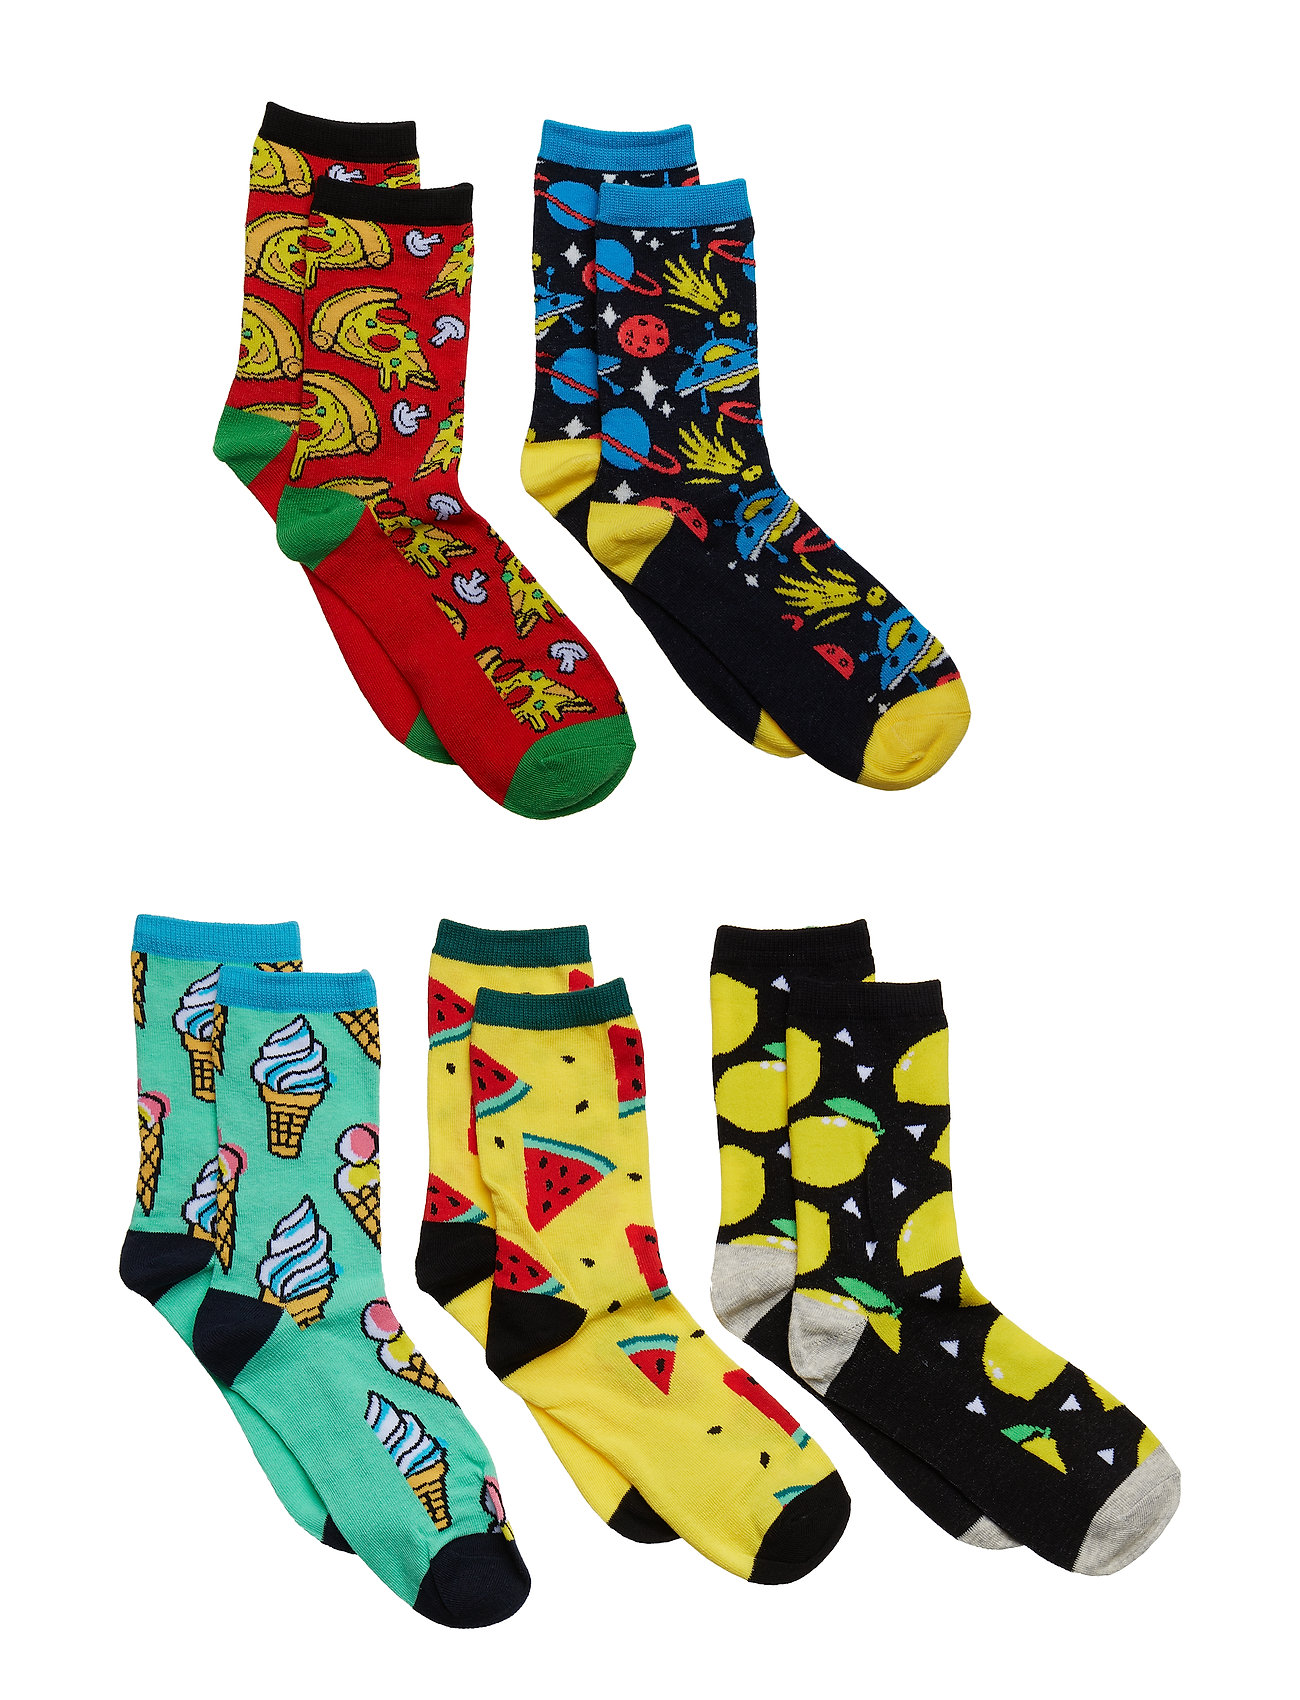 Image of Jaccrazy Socks 5 Pack Junior (3122948401)